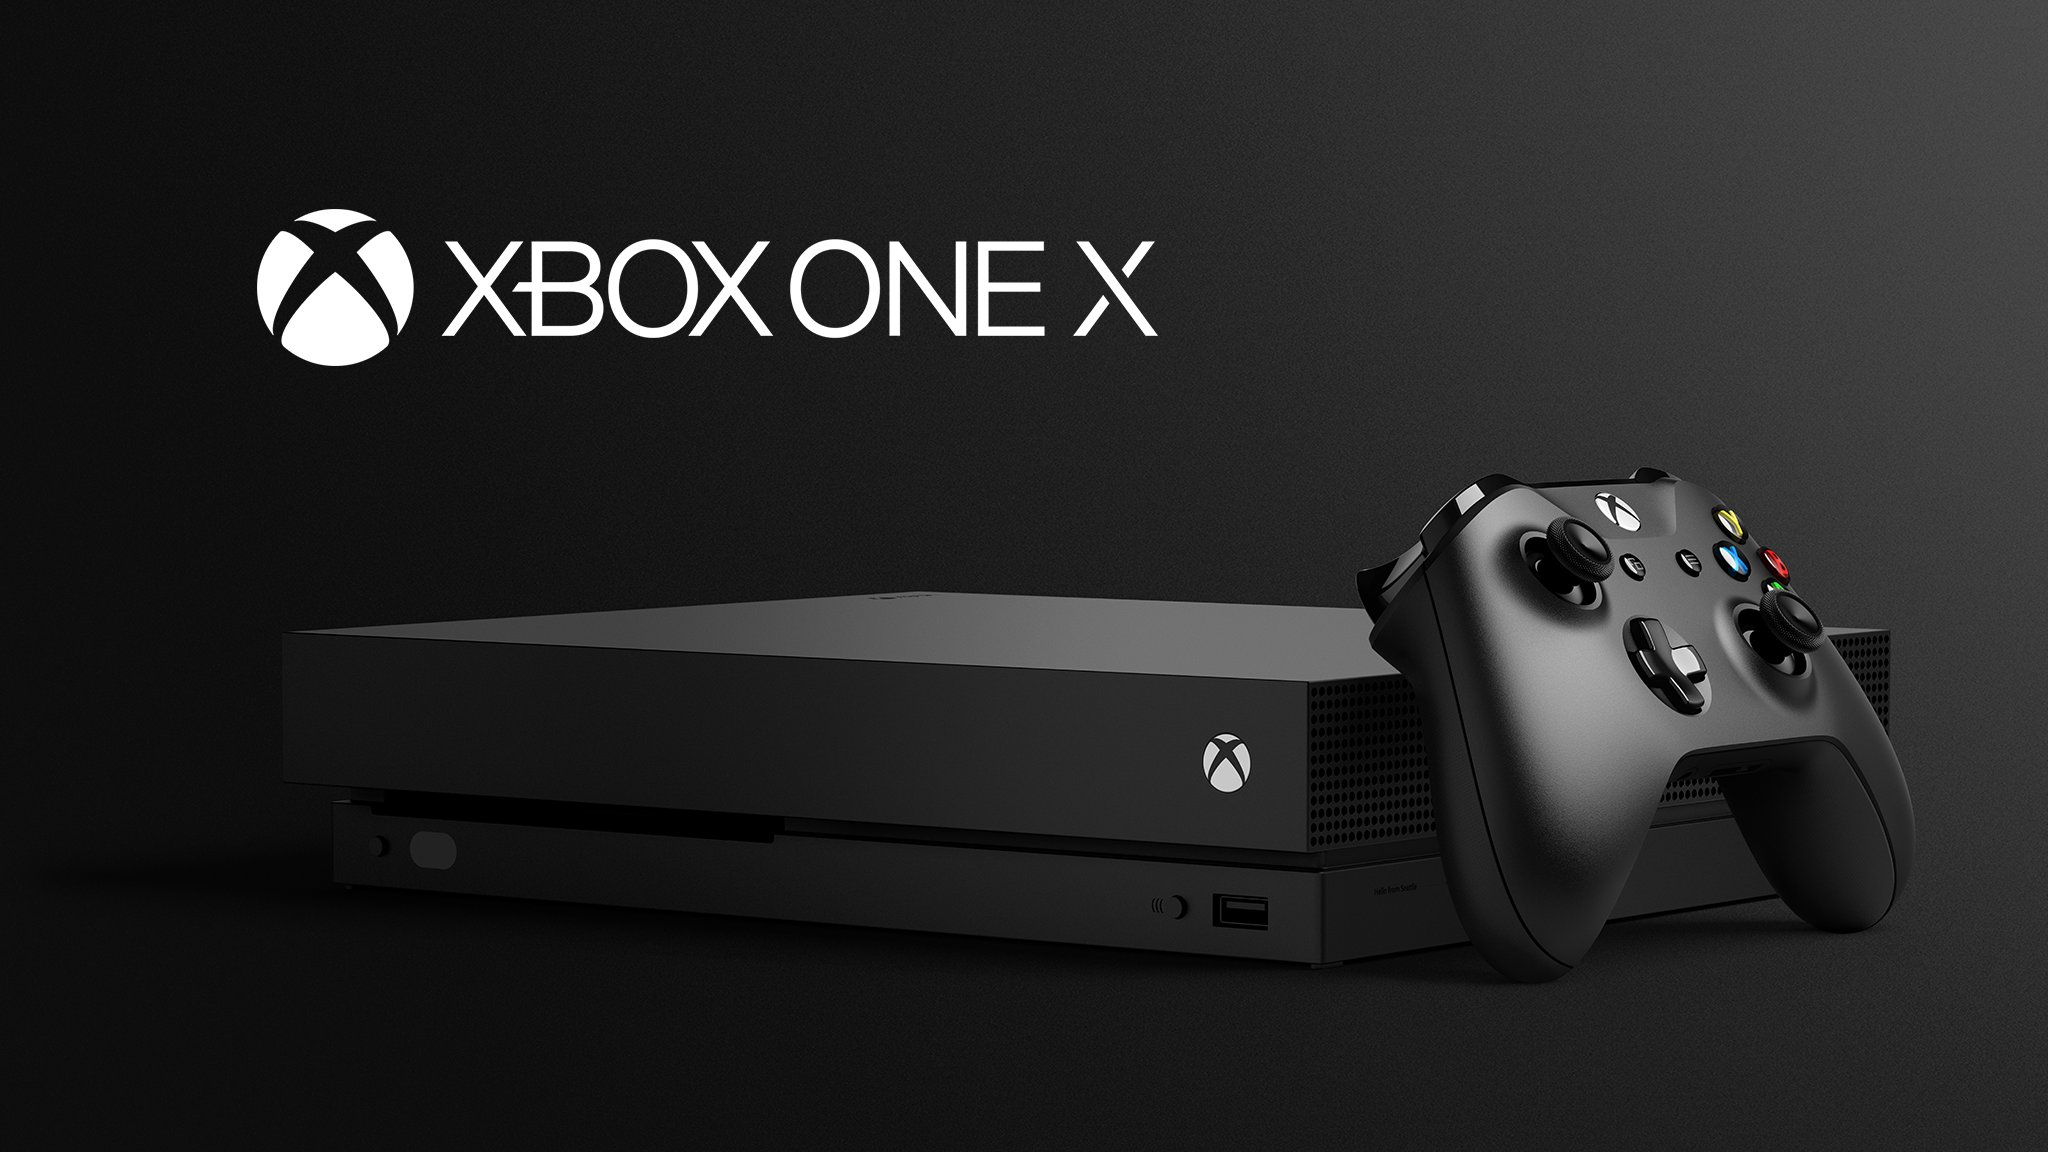 https://techtoday.in.ua/wp-content/uploads/2020/05/xbox-one-x.jpg